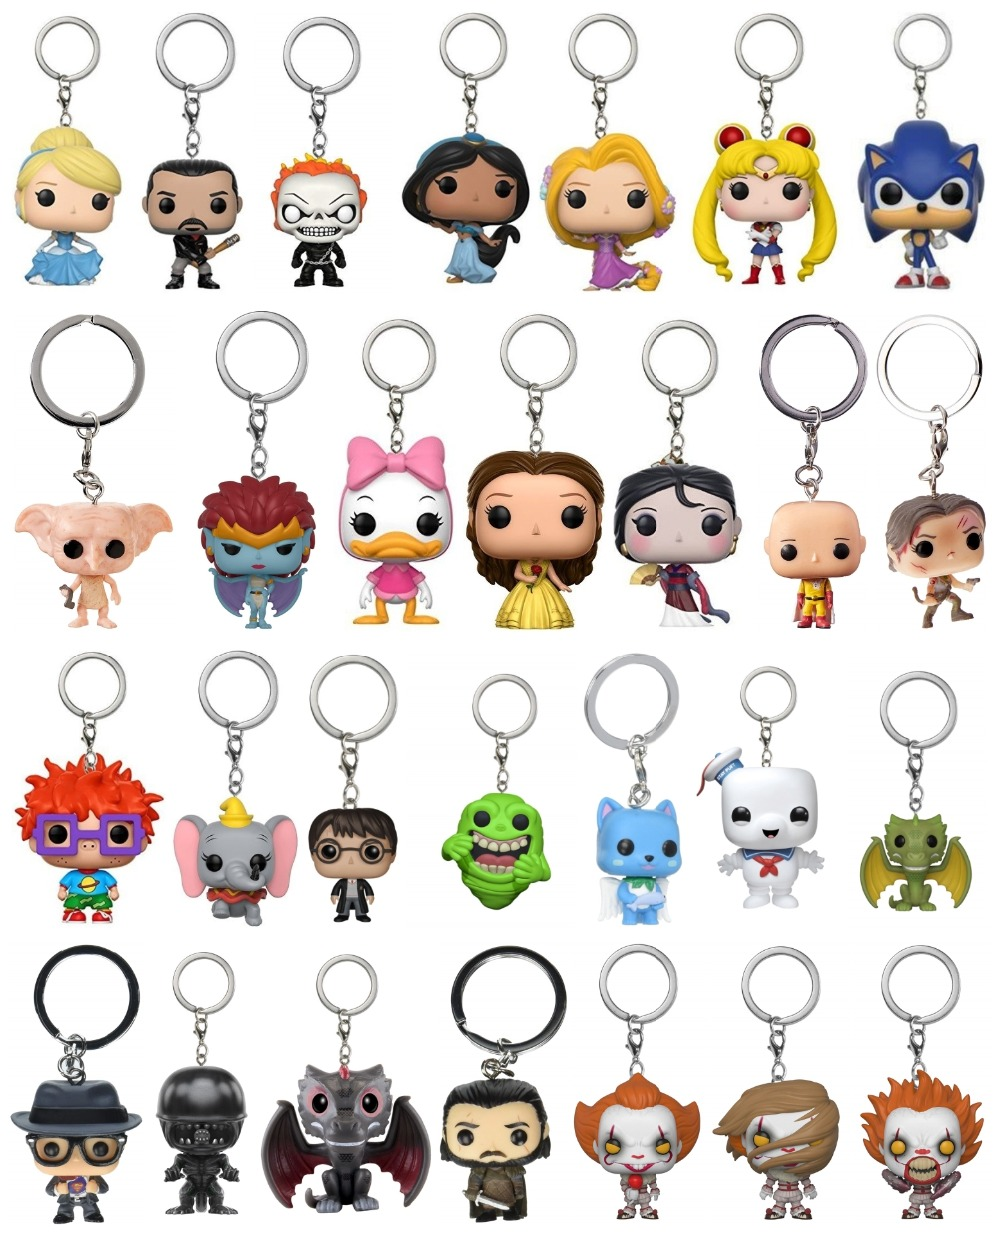 New Pop Toys Keychain Heroes Princess Rick And Morty Sailor Moon Game Of Thrones Key Chain Bag Pendant Jewelry Out Of Box